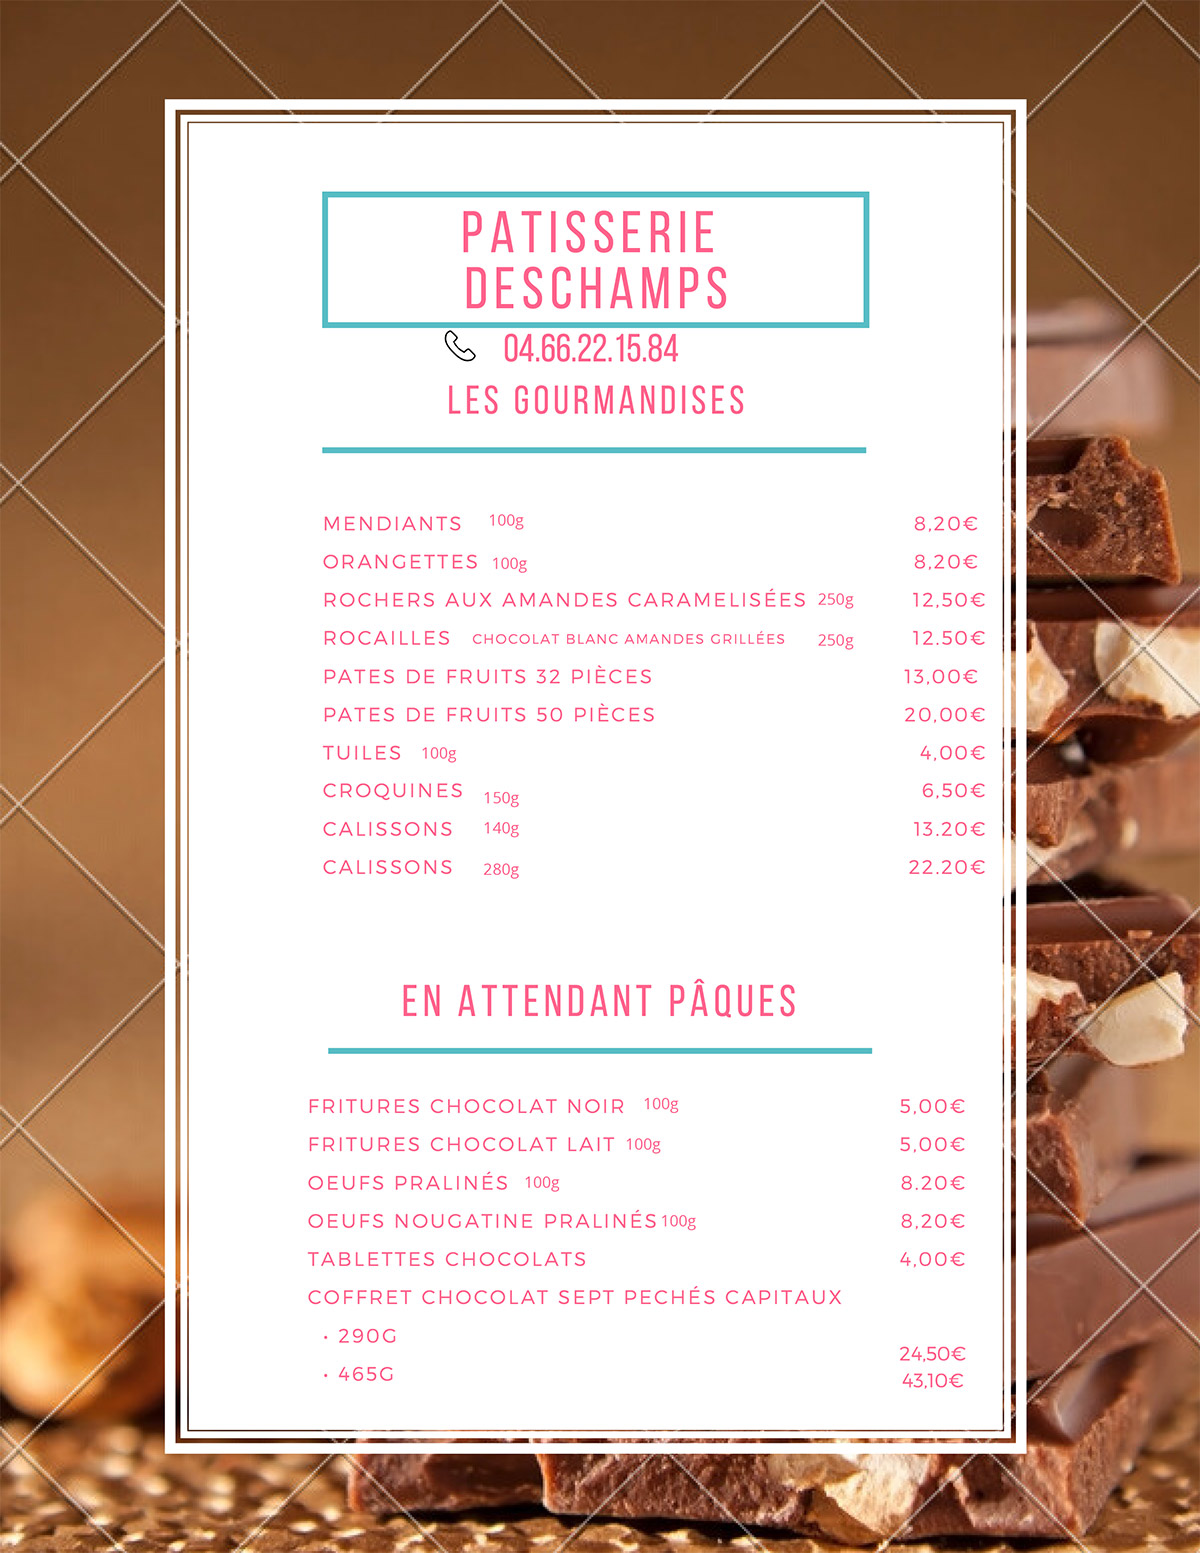 paques-2020-deschamps-patisserie-uzes-2